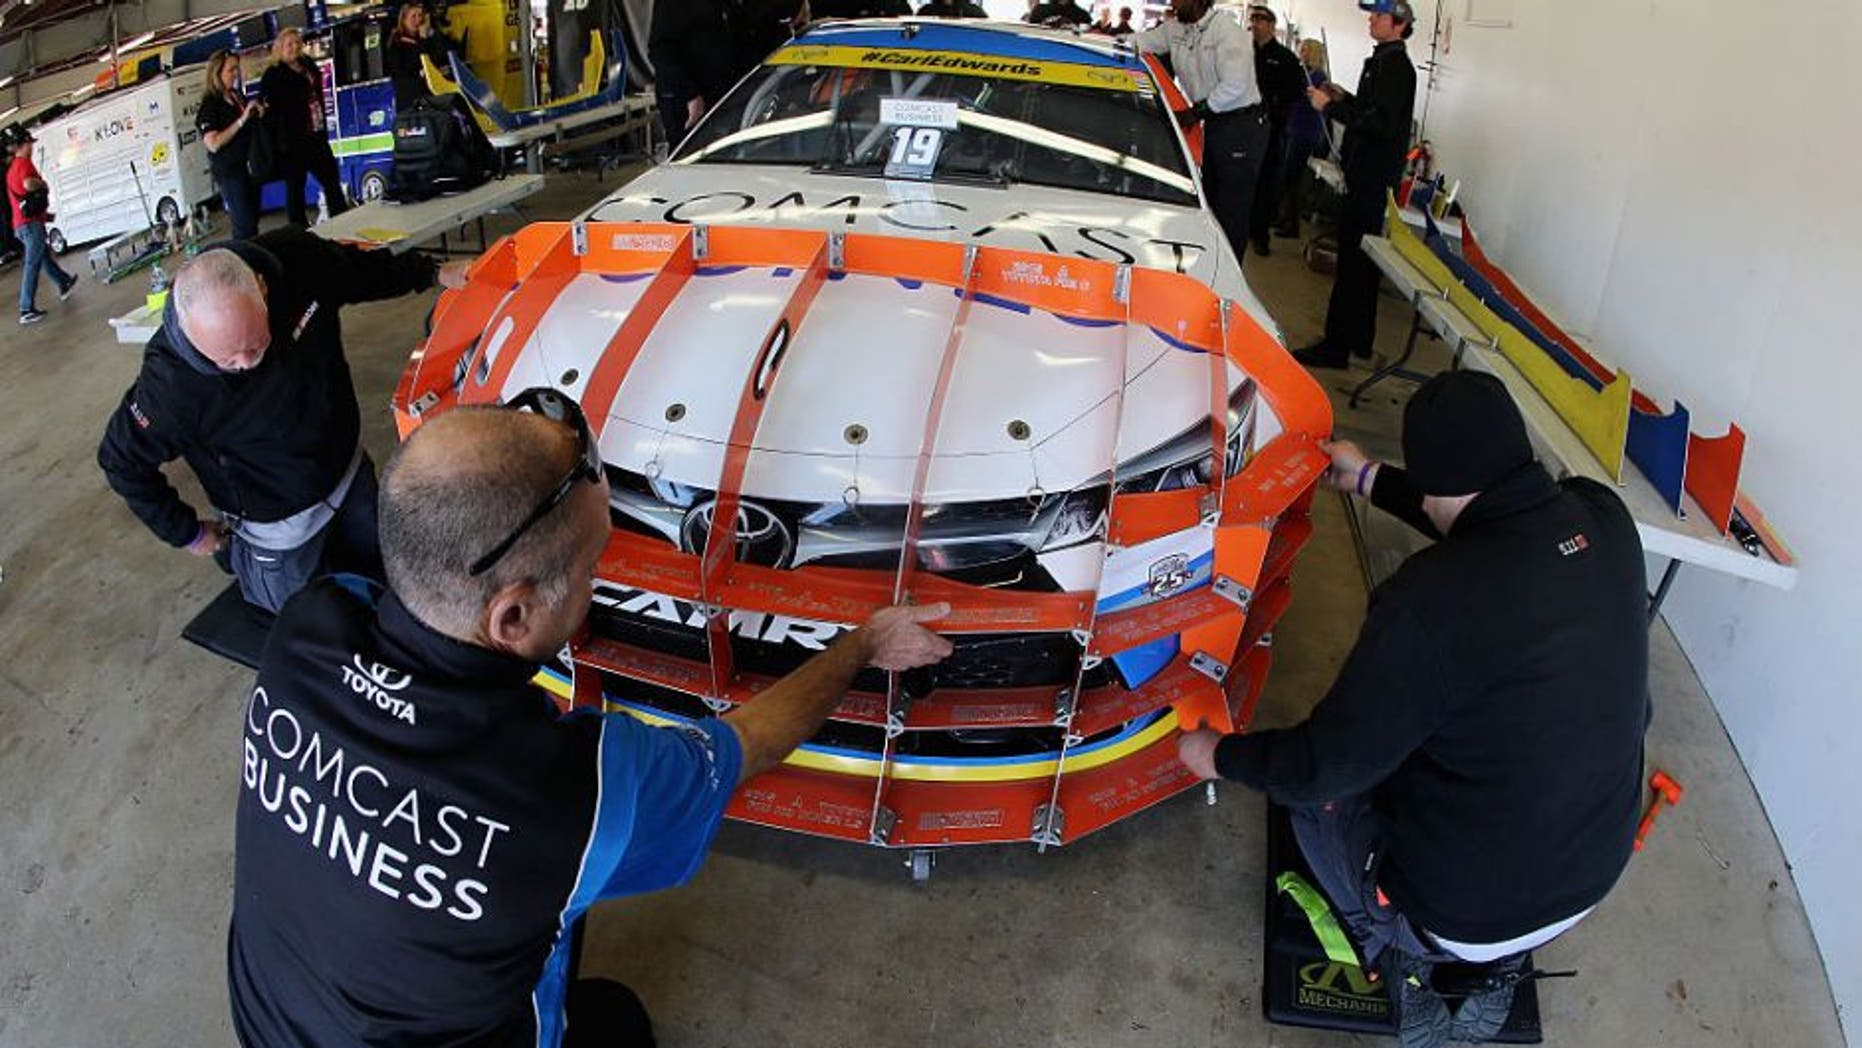 LOUDON, NH - SEPTEMBER 25: The car of Carl Edwards, driver of the #19 Comcast Business Toyota, goes through pre-race inspection prior to the NASCAR Sprint Cup Series Bad Boy Off Road 300 at New Hampshire Motor Speedway on September 25, 2016 in Loudon, New Hampshire. (Photo by Jerry Markland/Getty Images)